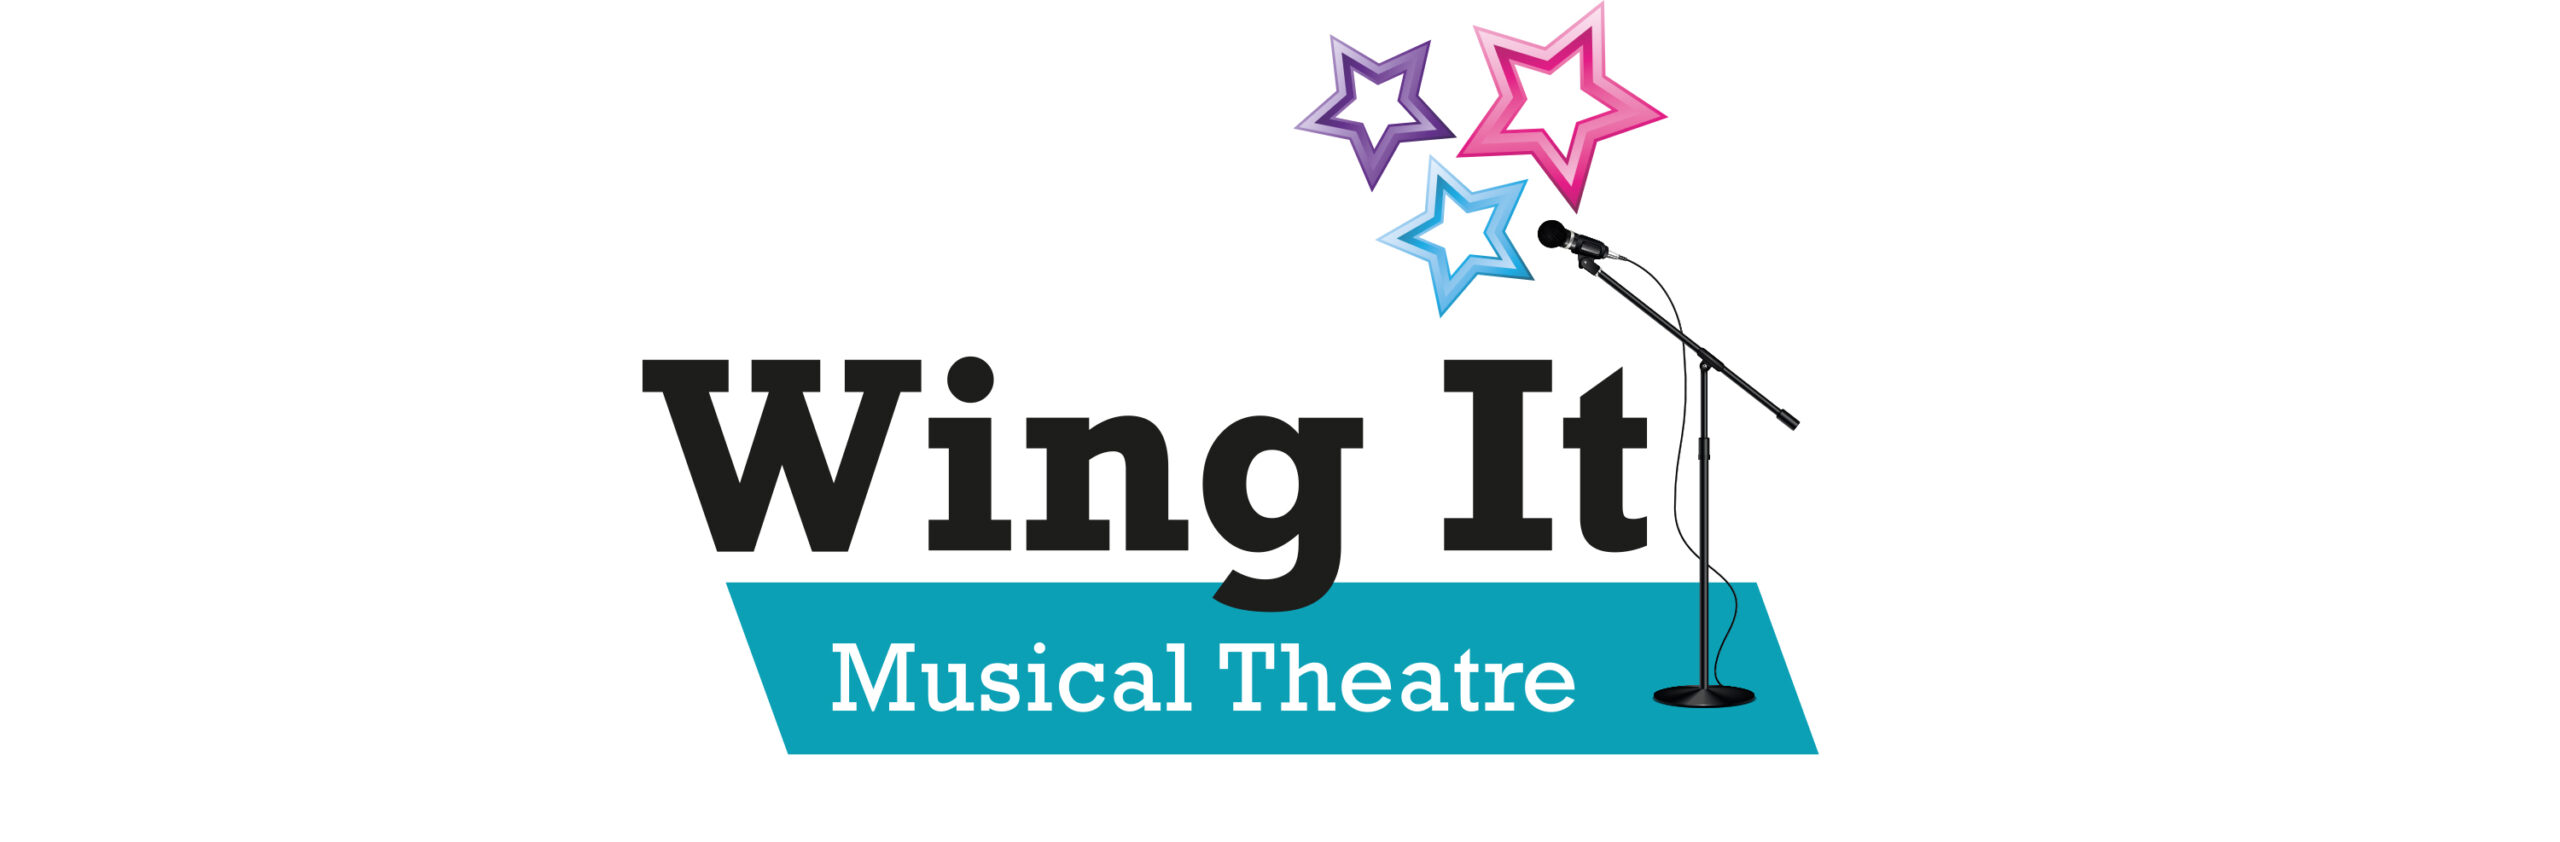 Wing It Musical Theatre